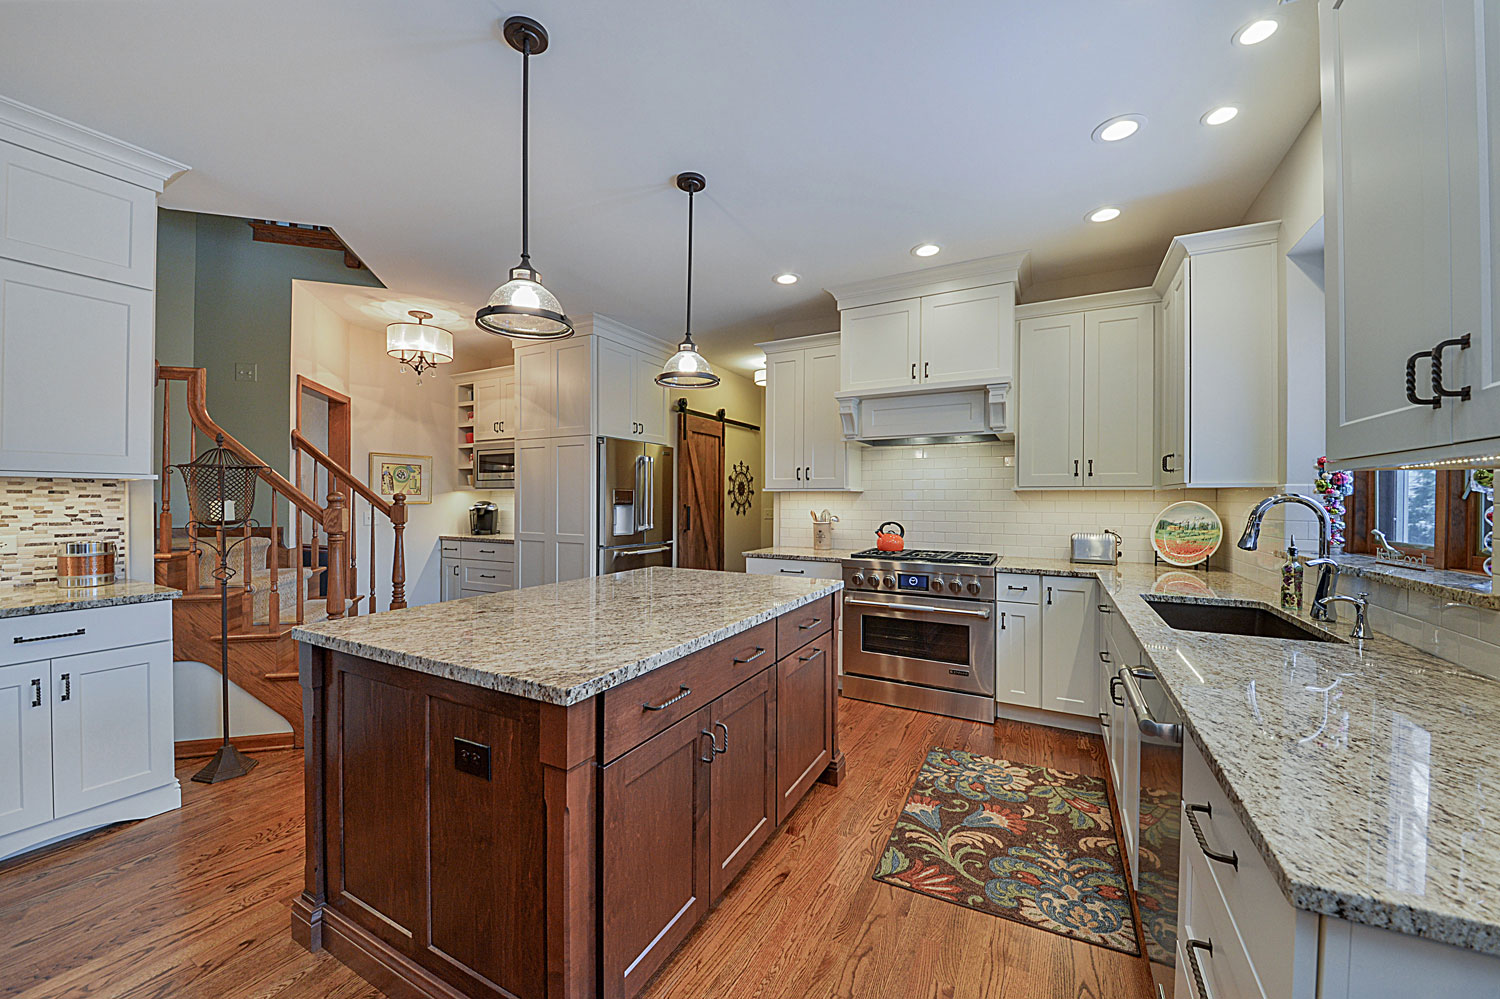 Patrick sharon 39 s kitchen remodel pictures home for Remodel design services